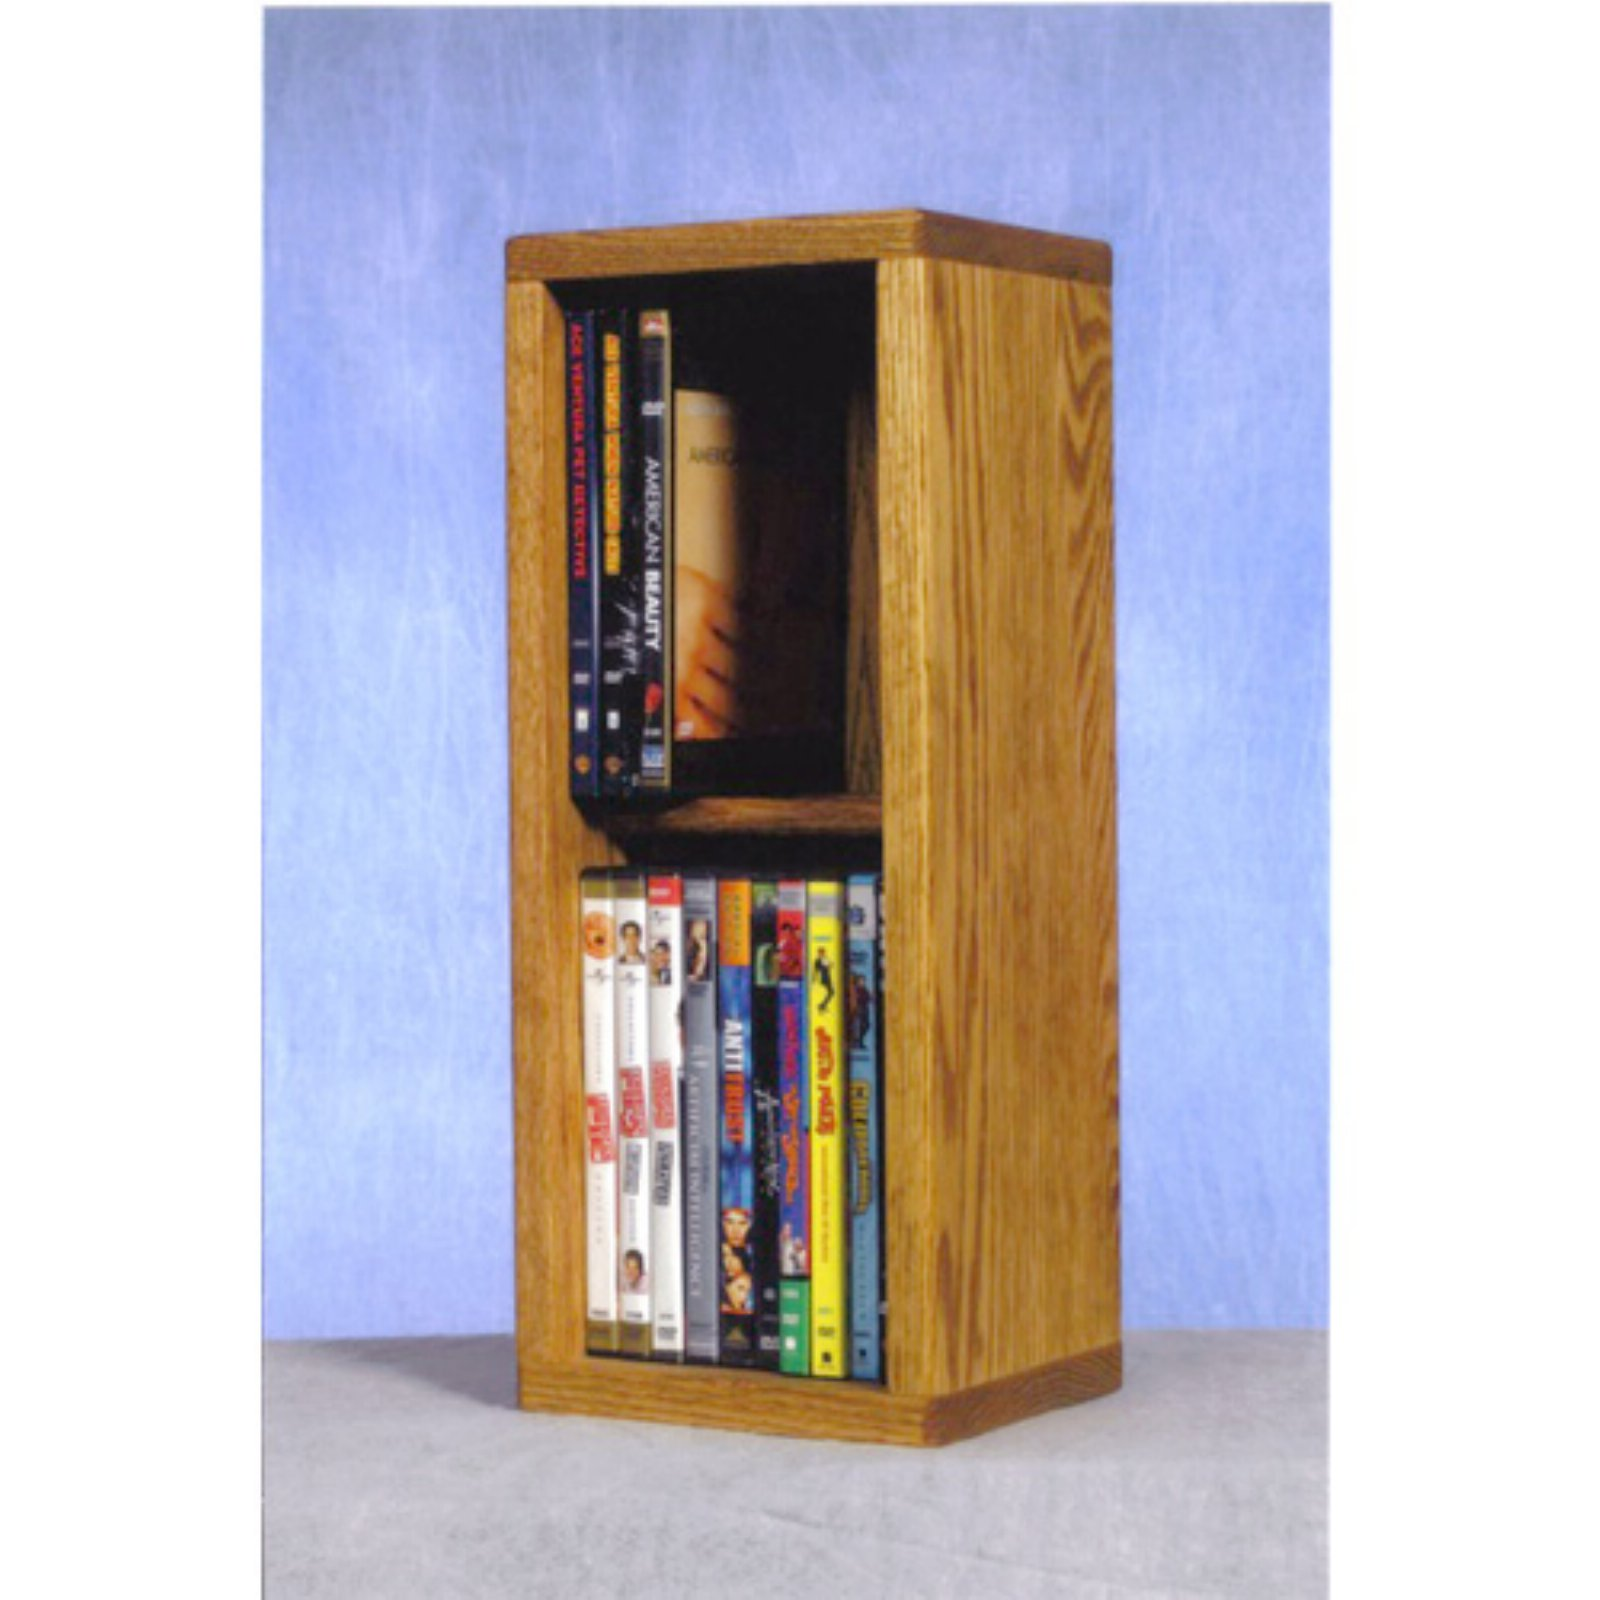 The Wood Shed Solid Oak 2 Row Dowel 20 DVD Media Rack by The Wood Shed